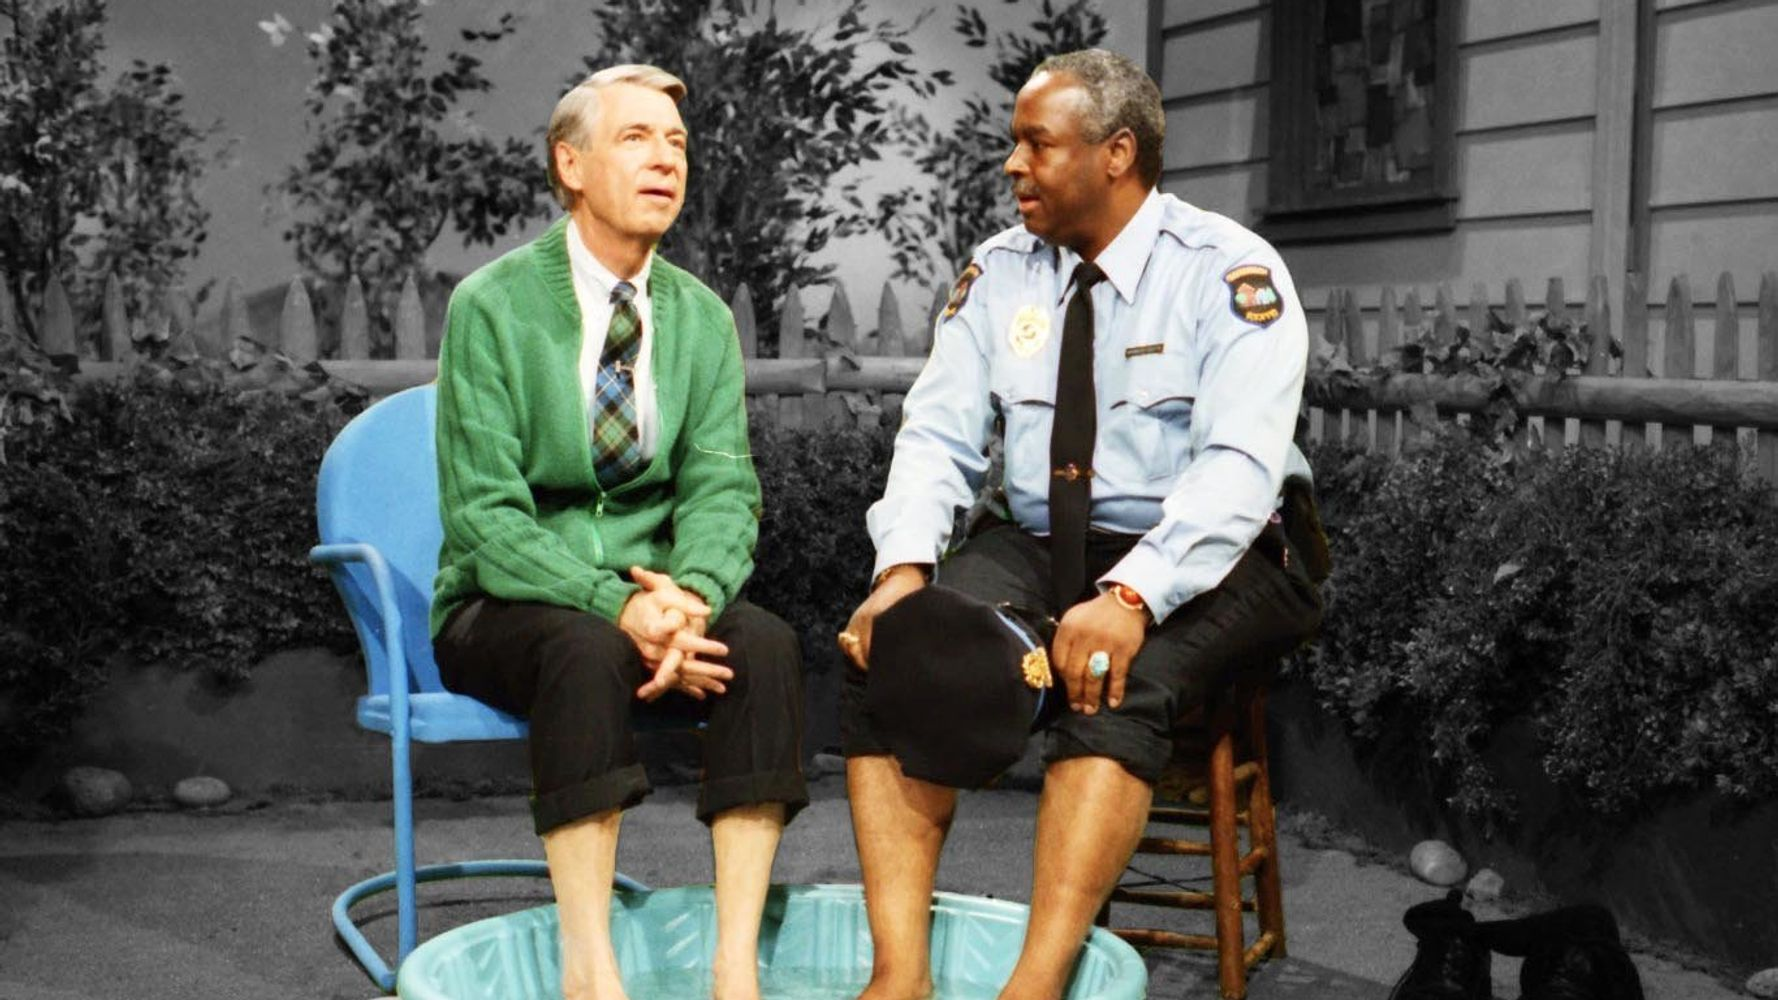 The Gay 'Ghetto Boy' Who Bonded With Mister Rogers And Changed The Neighborhood